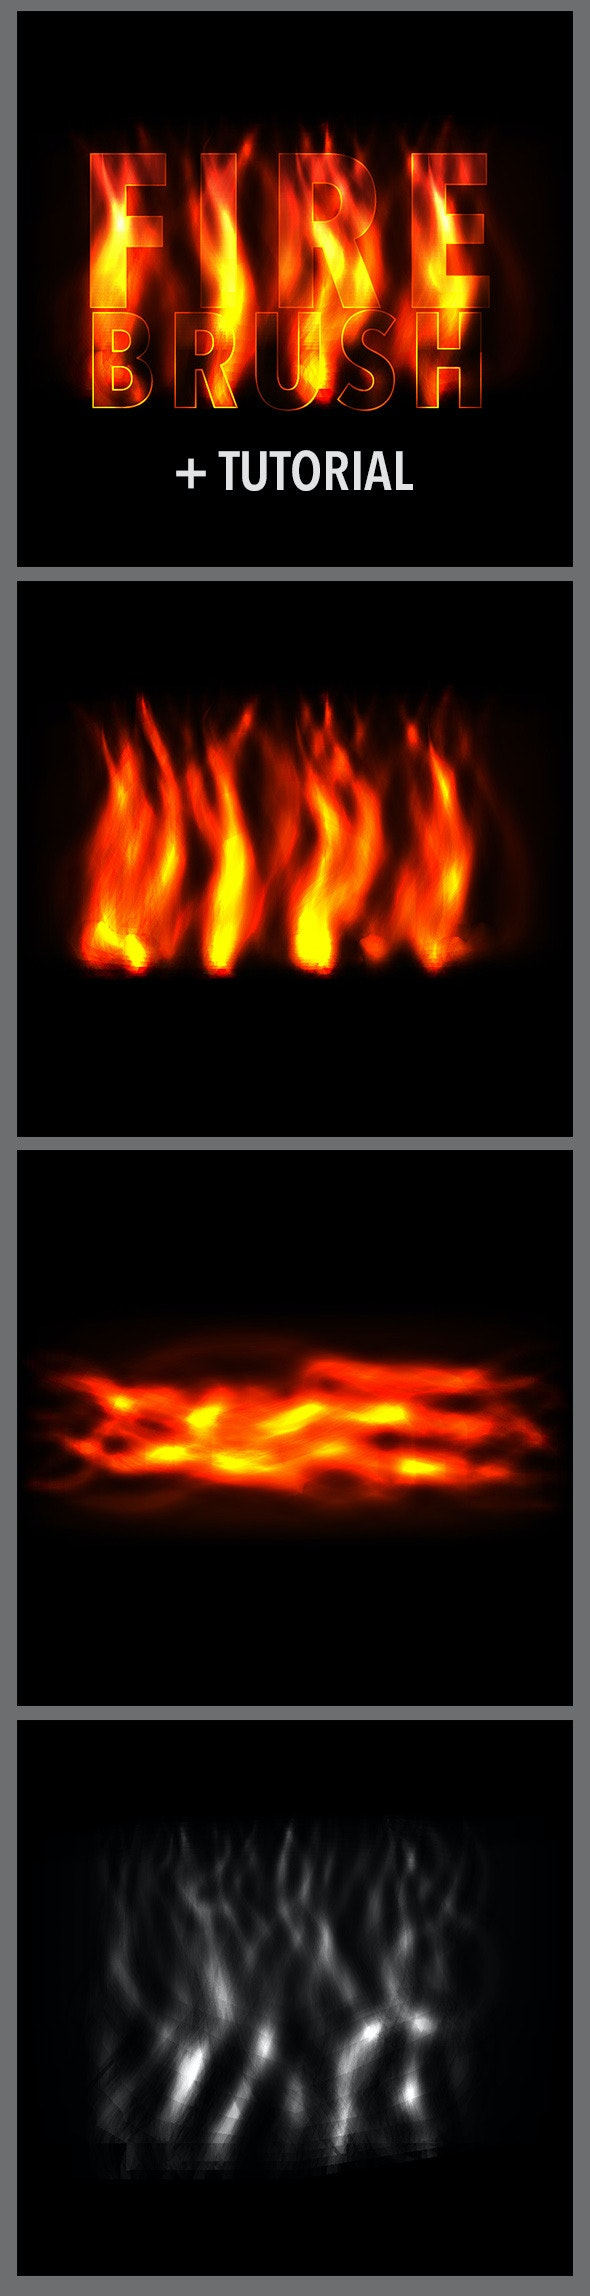 Fire Brushes for Realistic Effect - Abstract Brushes